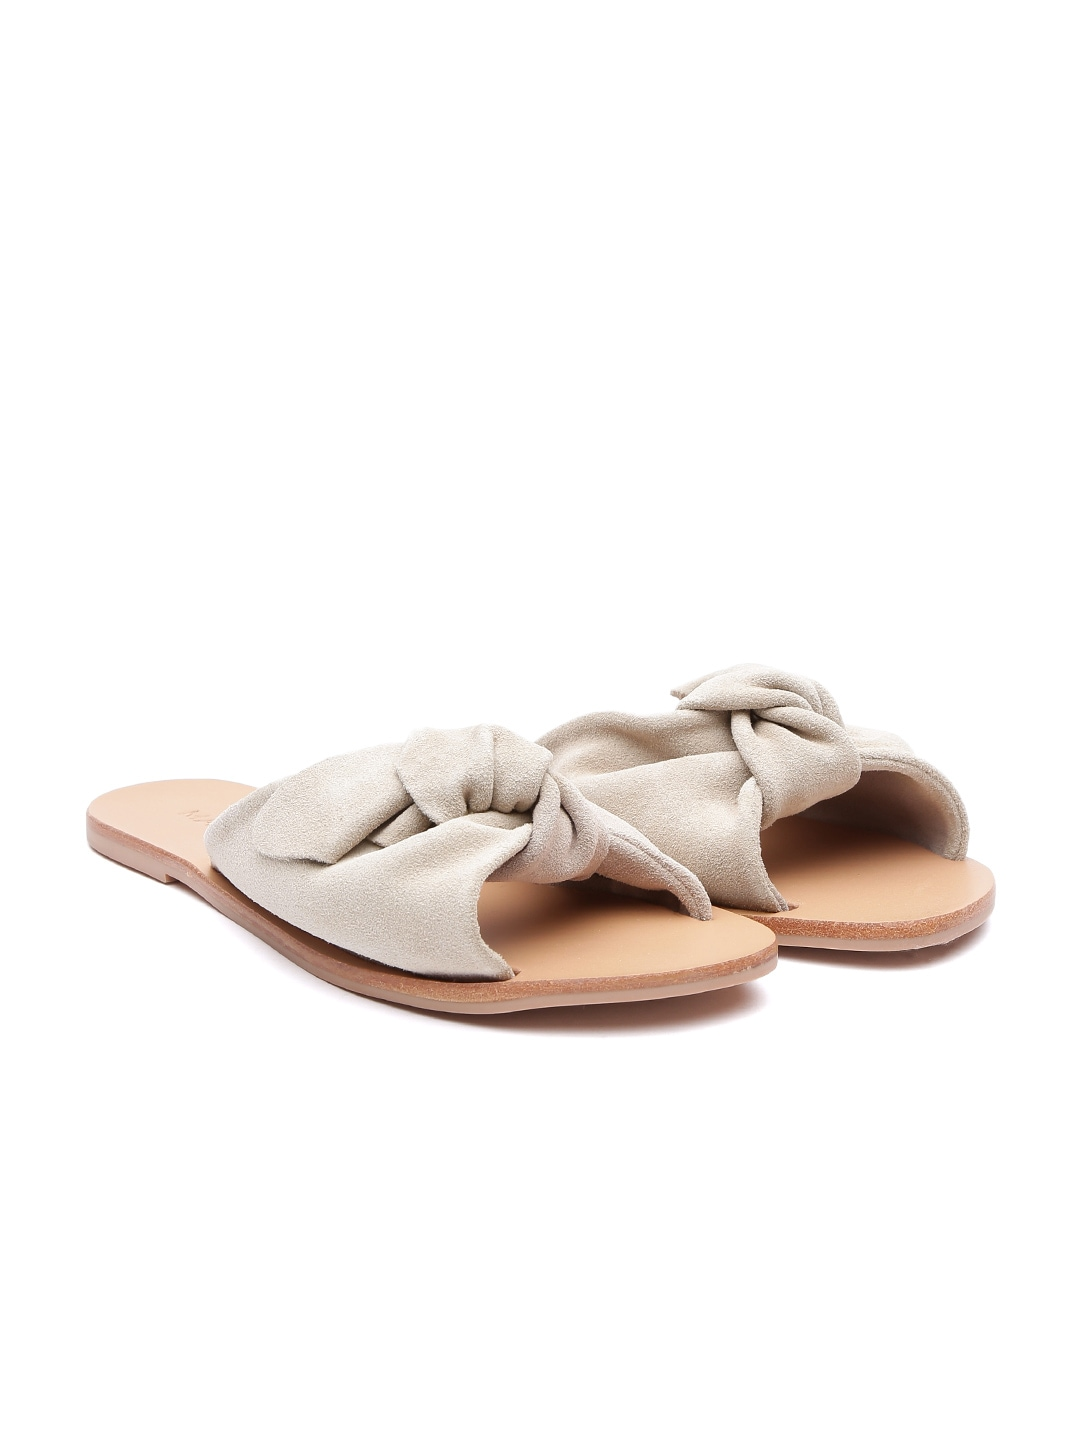 MANGO Women Beige Solid Leather Open Toe Flats